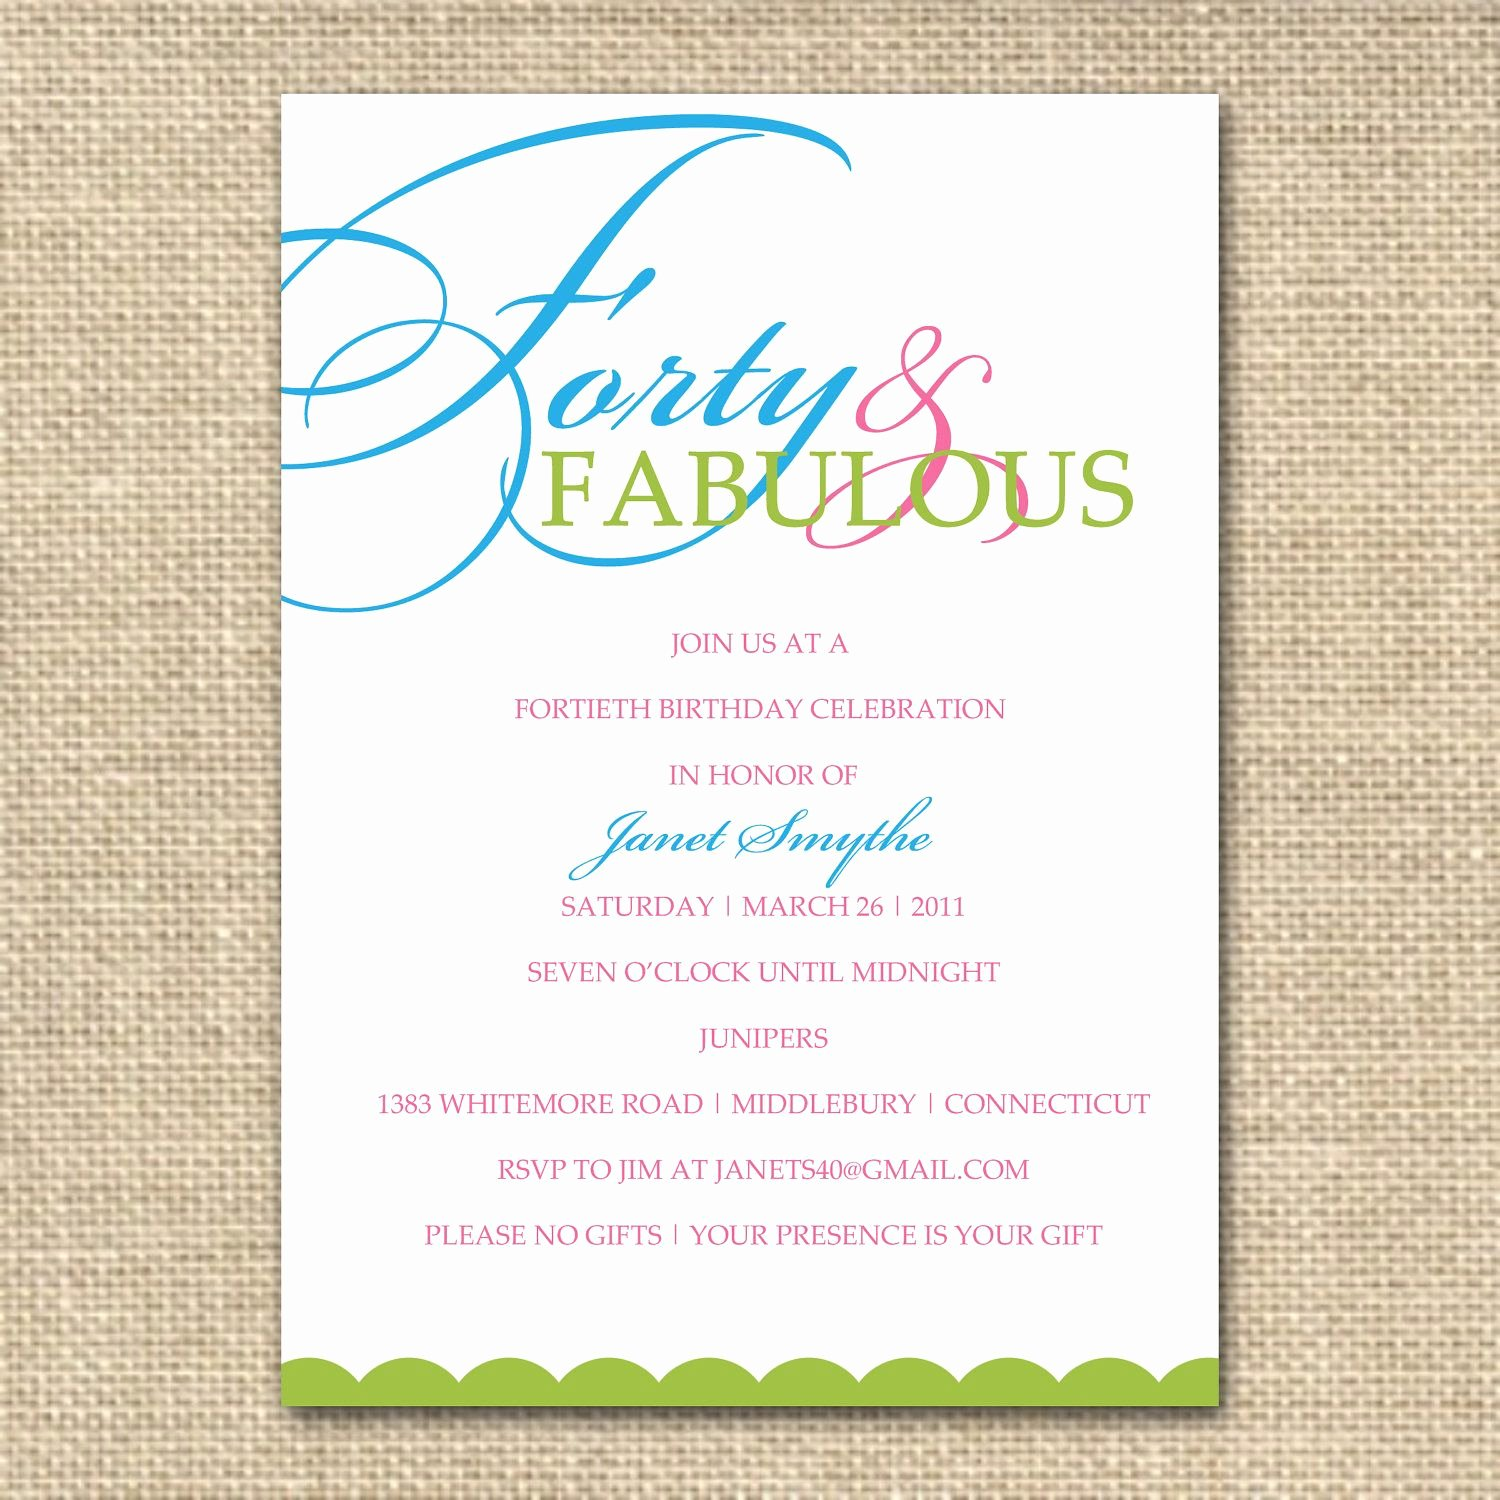 40th Birthday Free Printables New 40th Birthday Invitation forty and Fabulous Printable